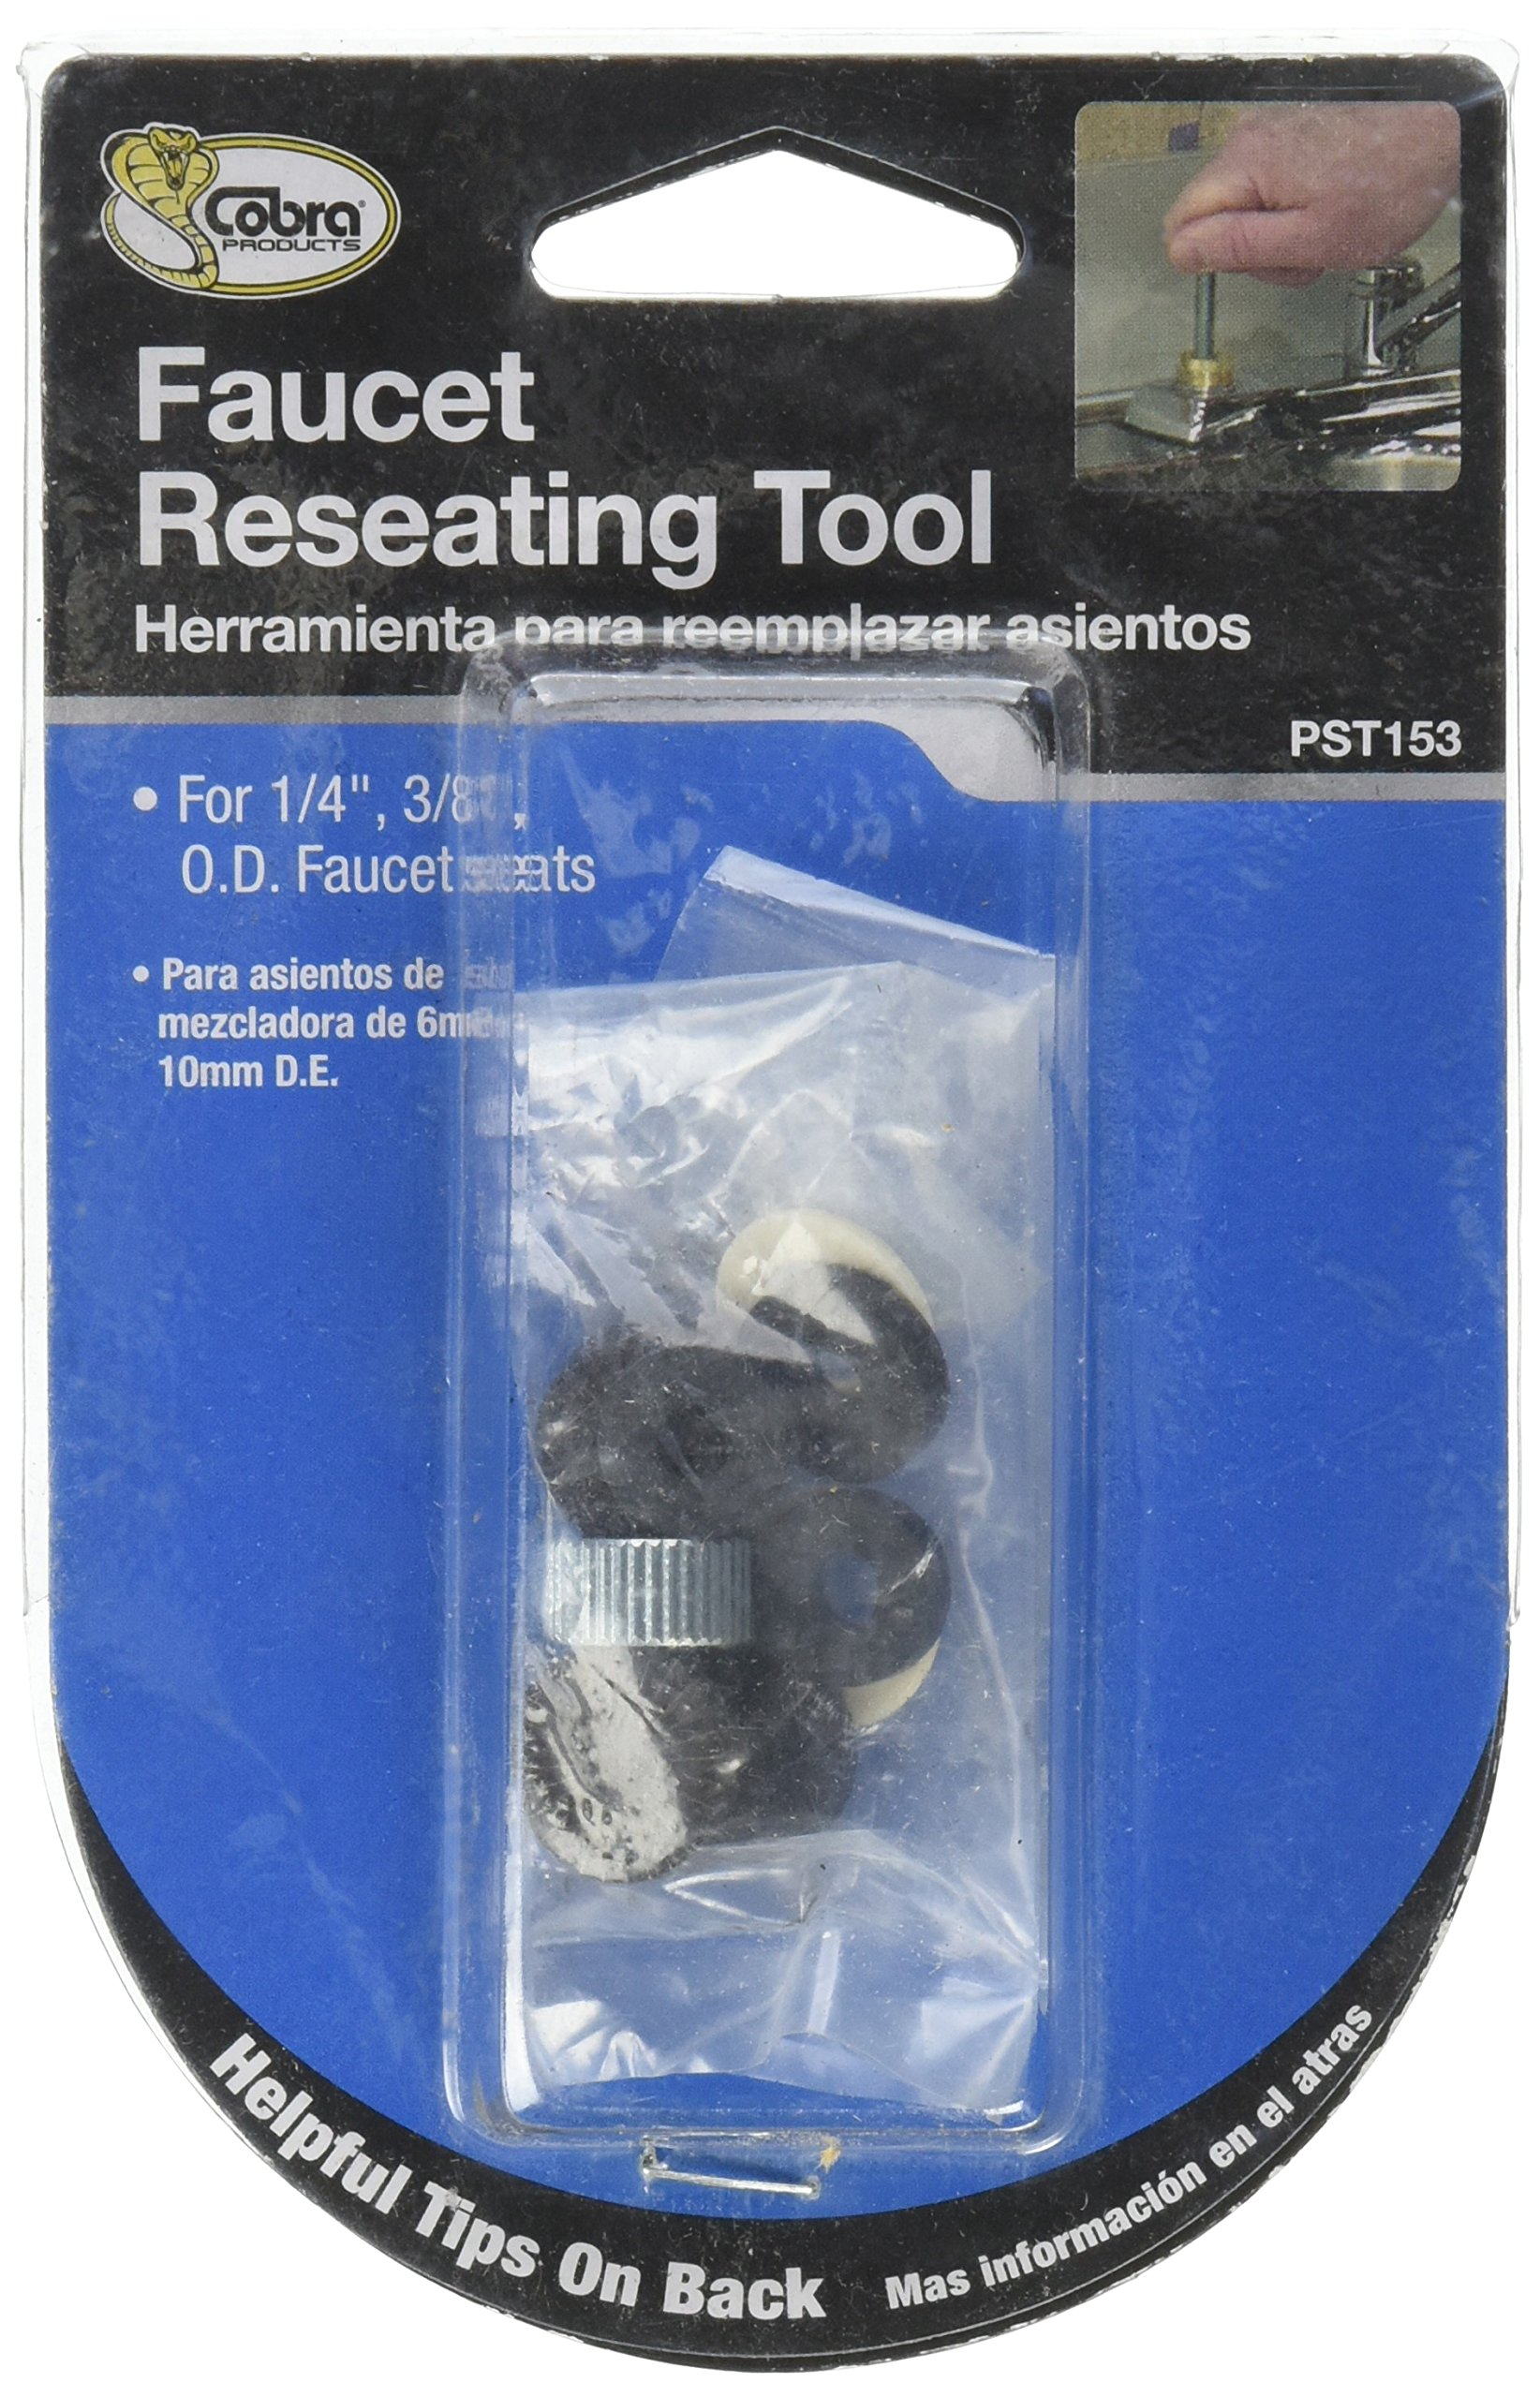 Cobra Products PST153 Faucet Reseating Tool